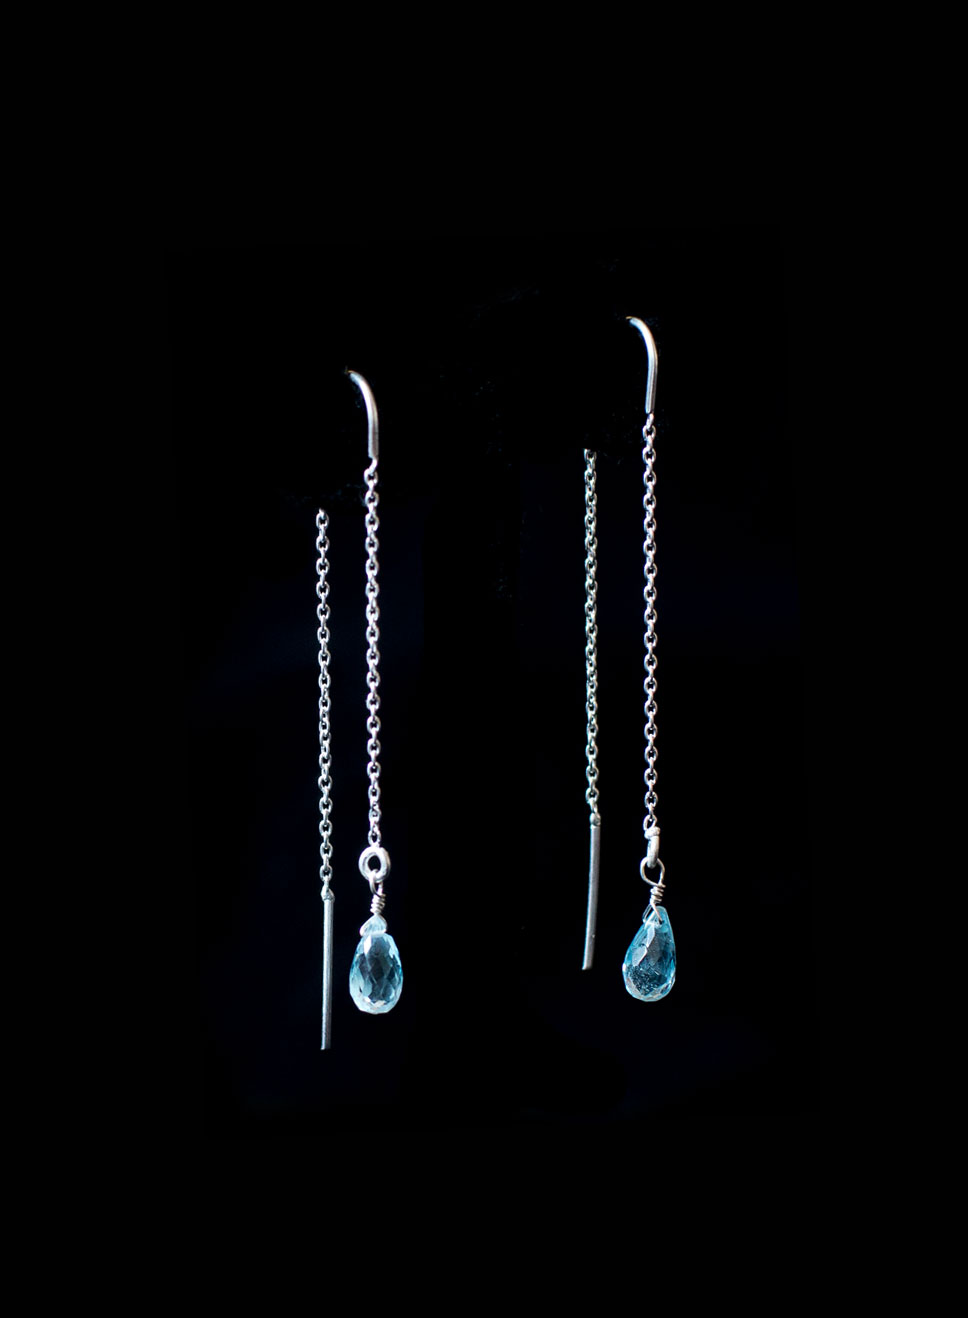 Silver needle chain with aqua marine drop gems Also available in peridot and  amethyst. Earring length-6cm.